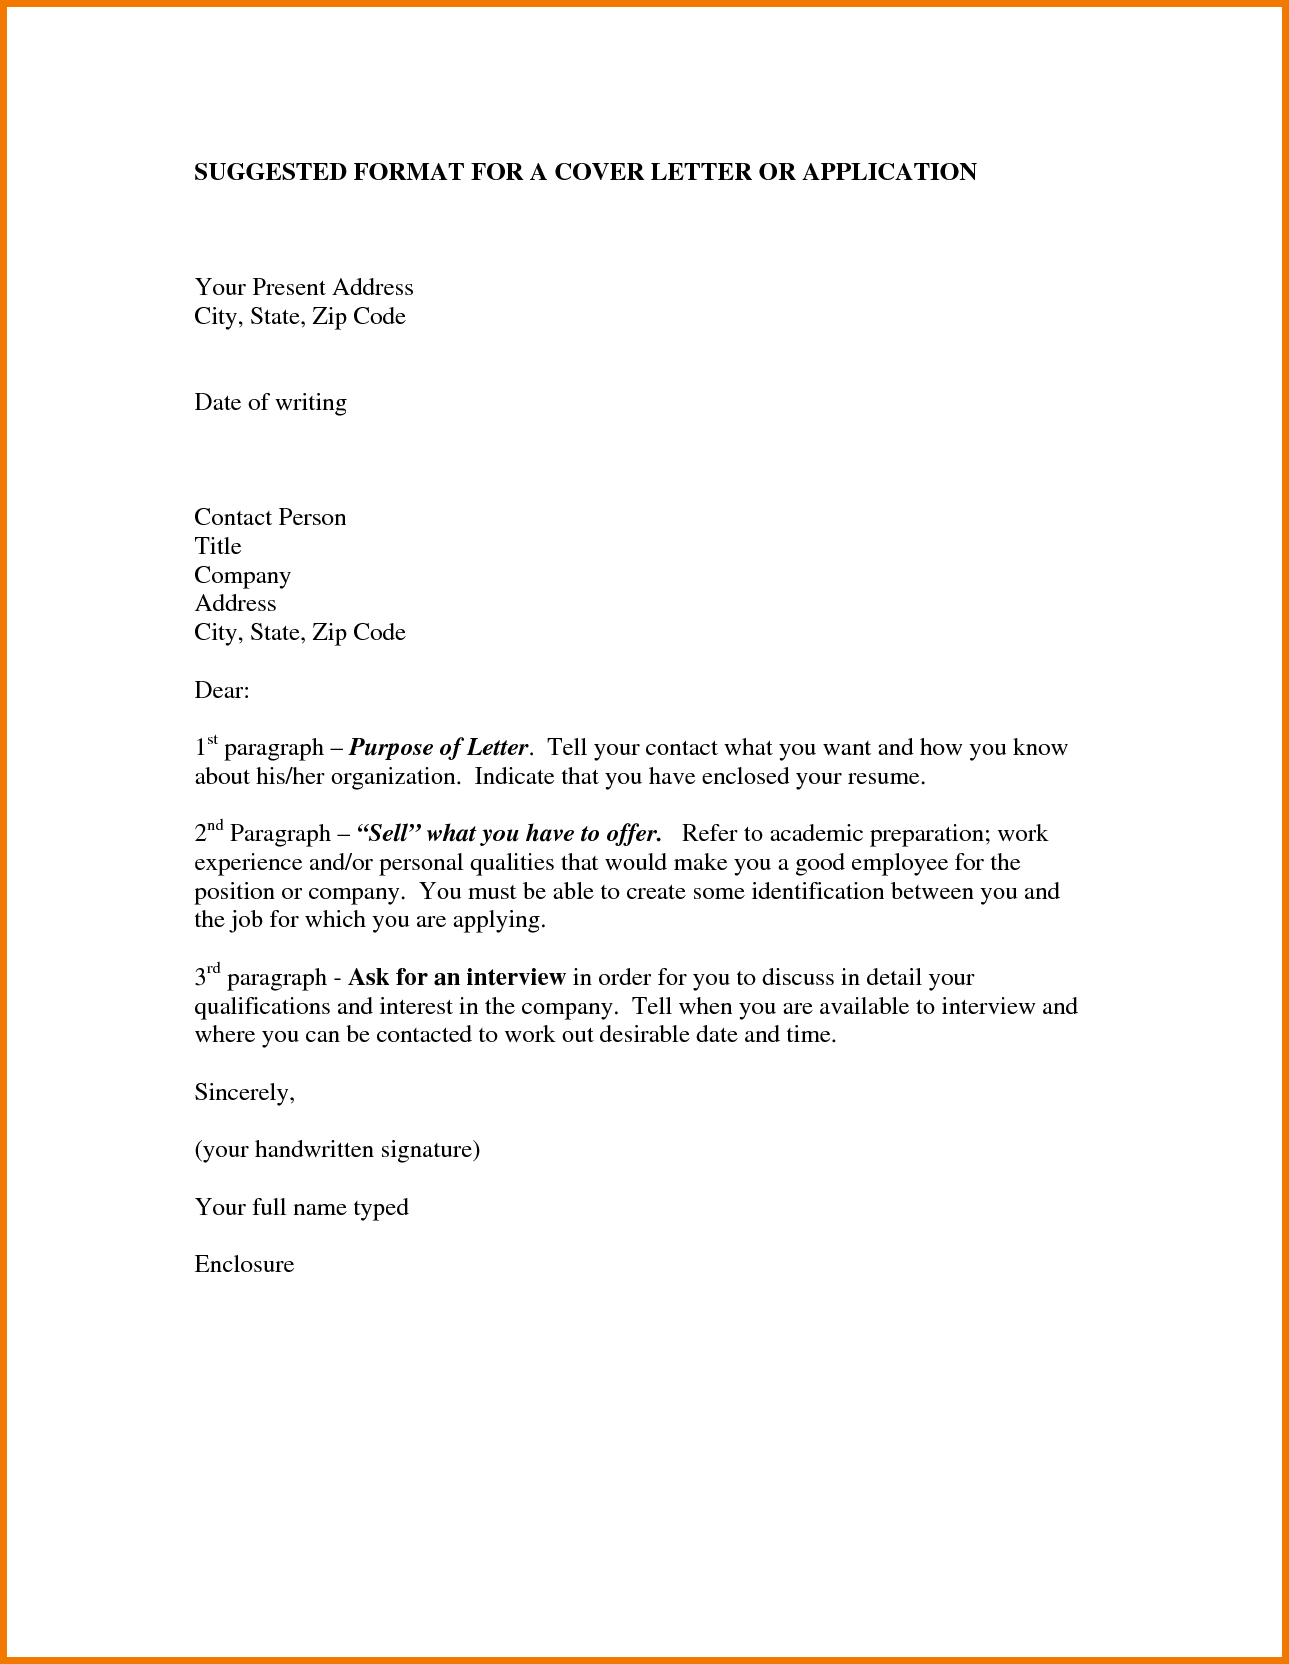 How To Write An Effective Cover Letter Formats Of Application Letter  Application Letter  Pinterest